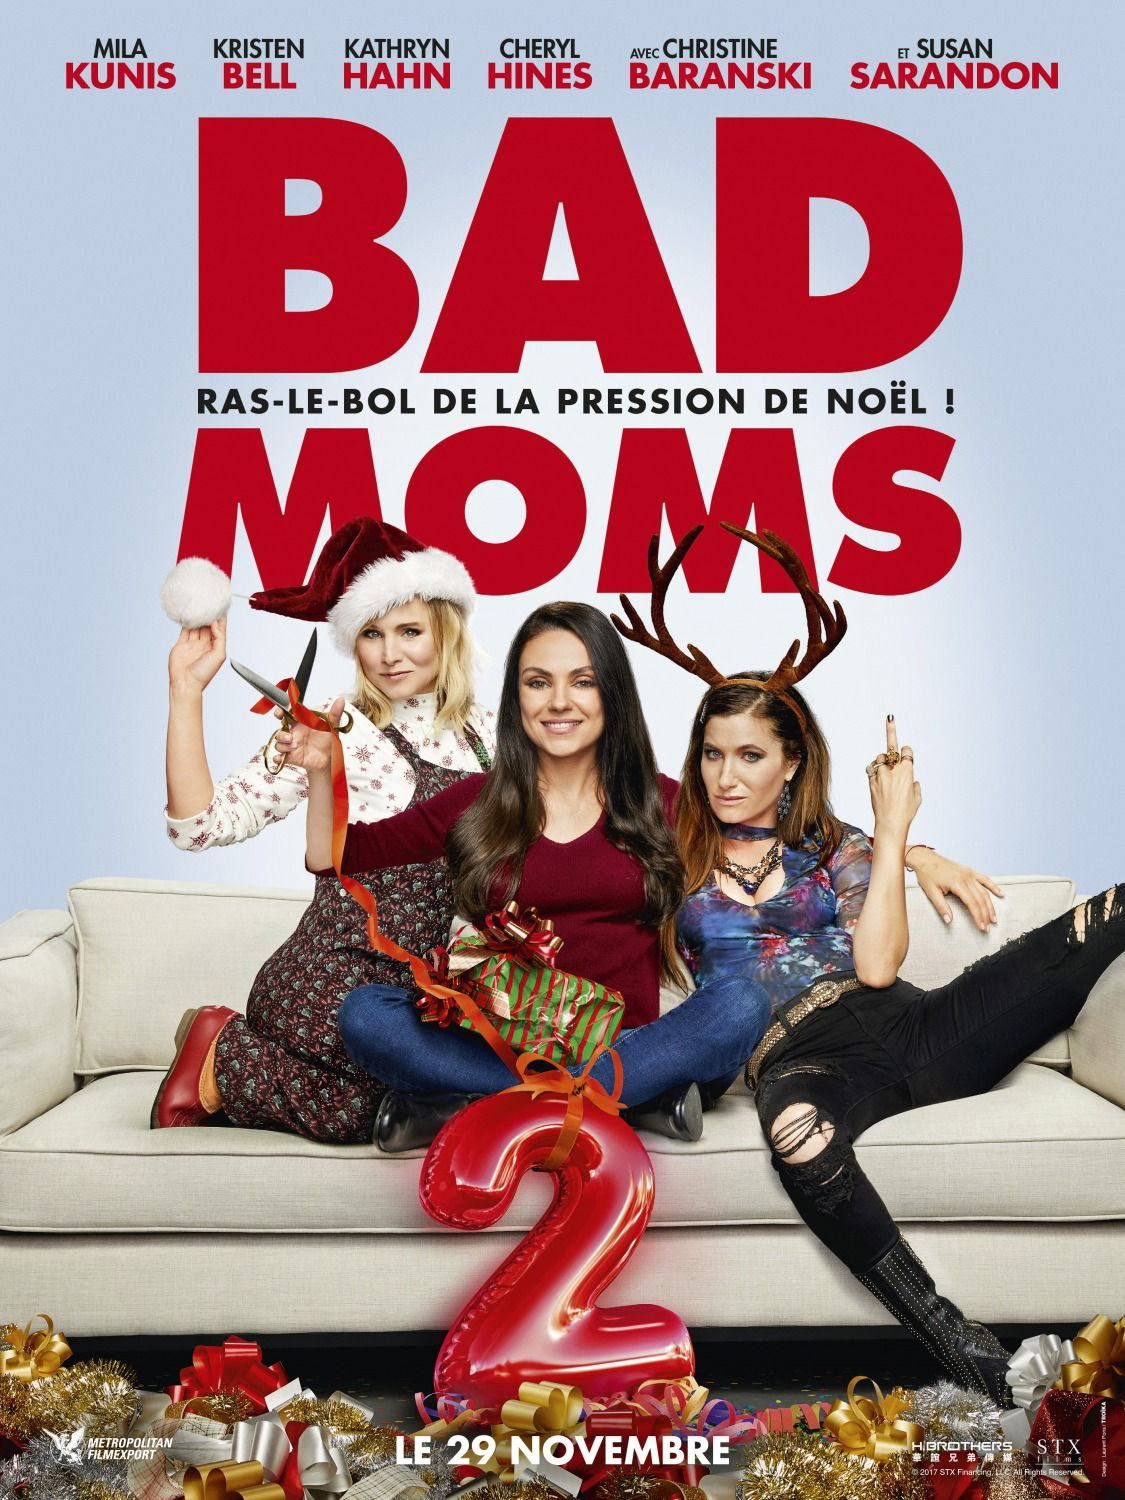 A Bad Moms Christmas Movie Poster.A Bad Moms Christmas Movie Poster 7 Posters Christmas